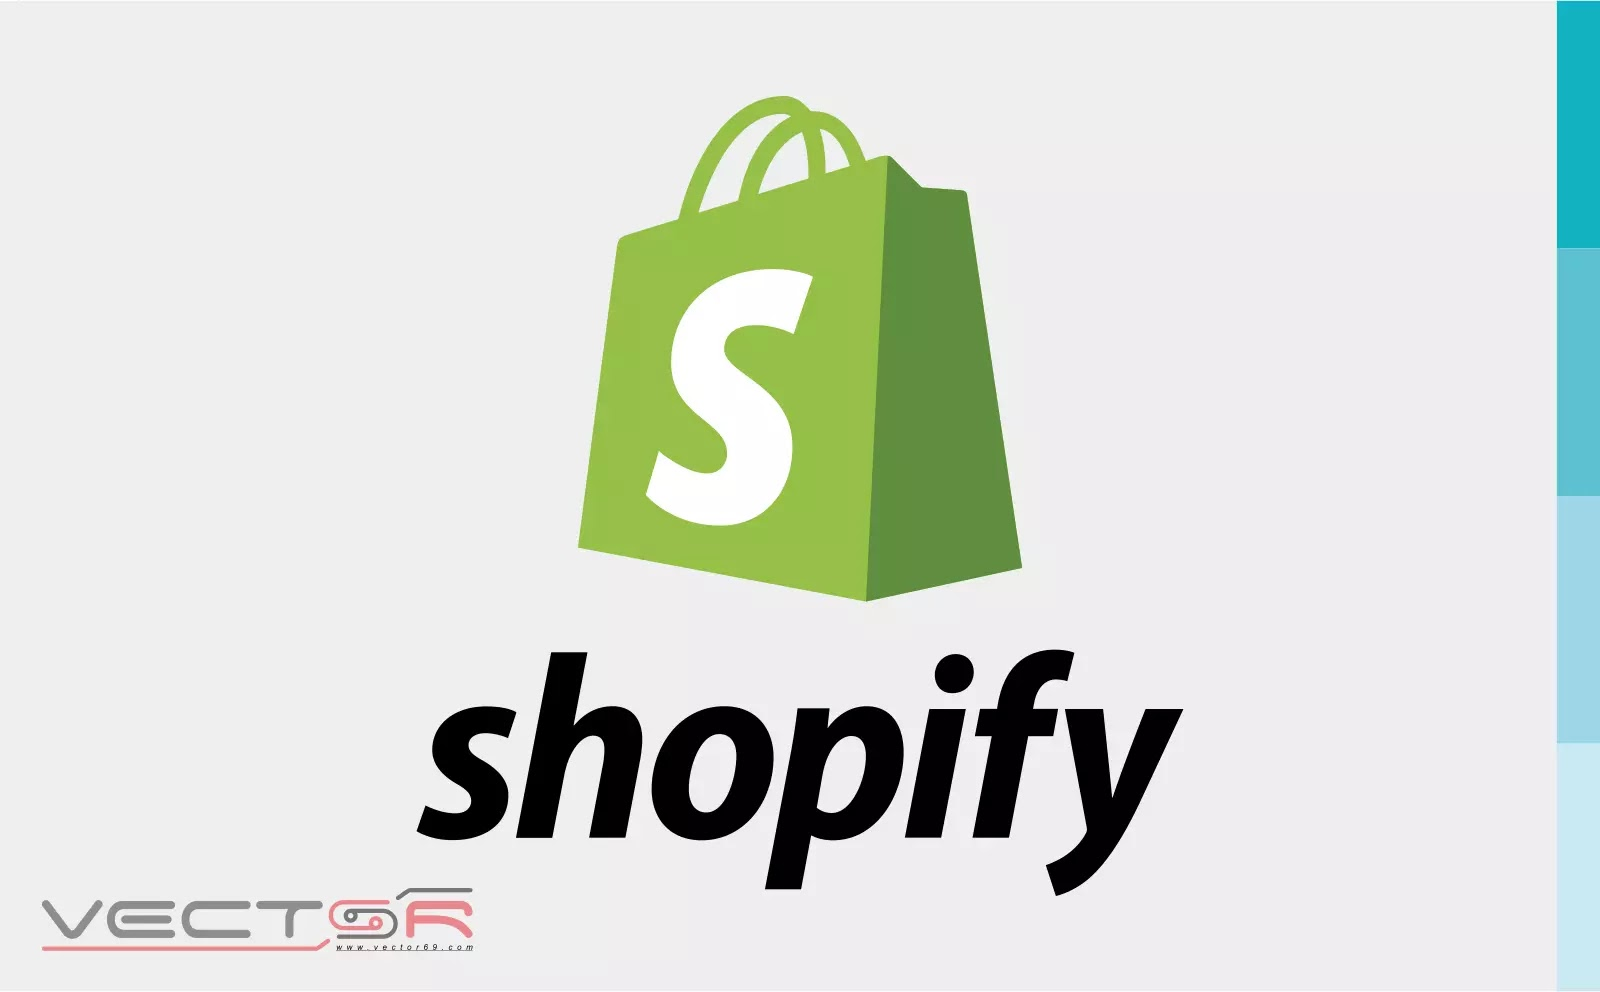 Shopify (2006) Vertical Logo - Download Vector File SVG (Scalable Vector Graphics)